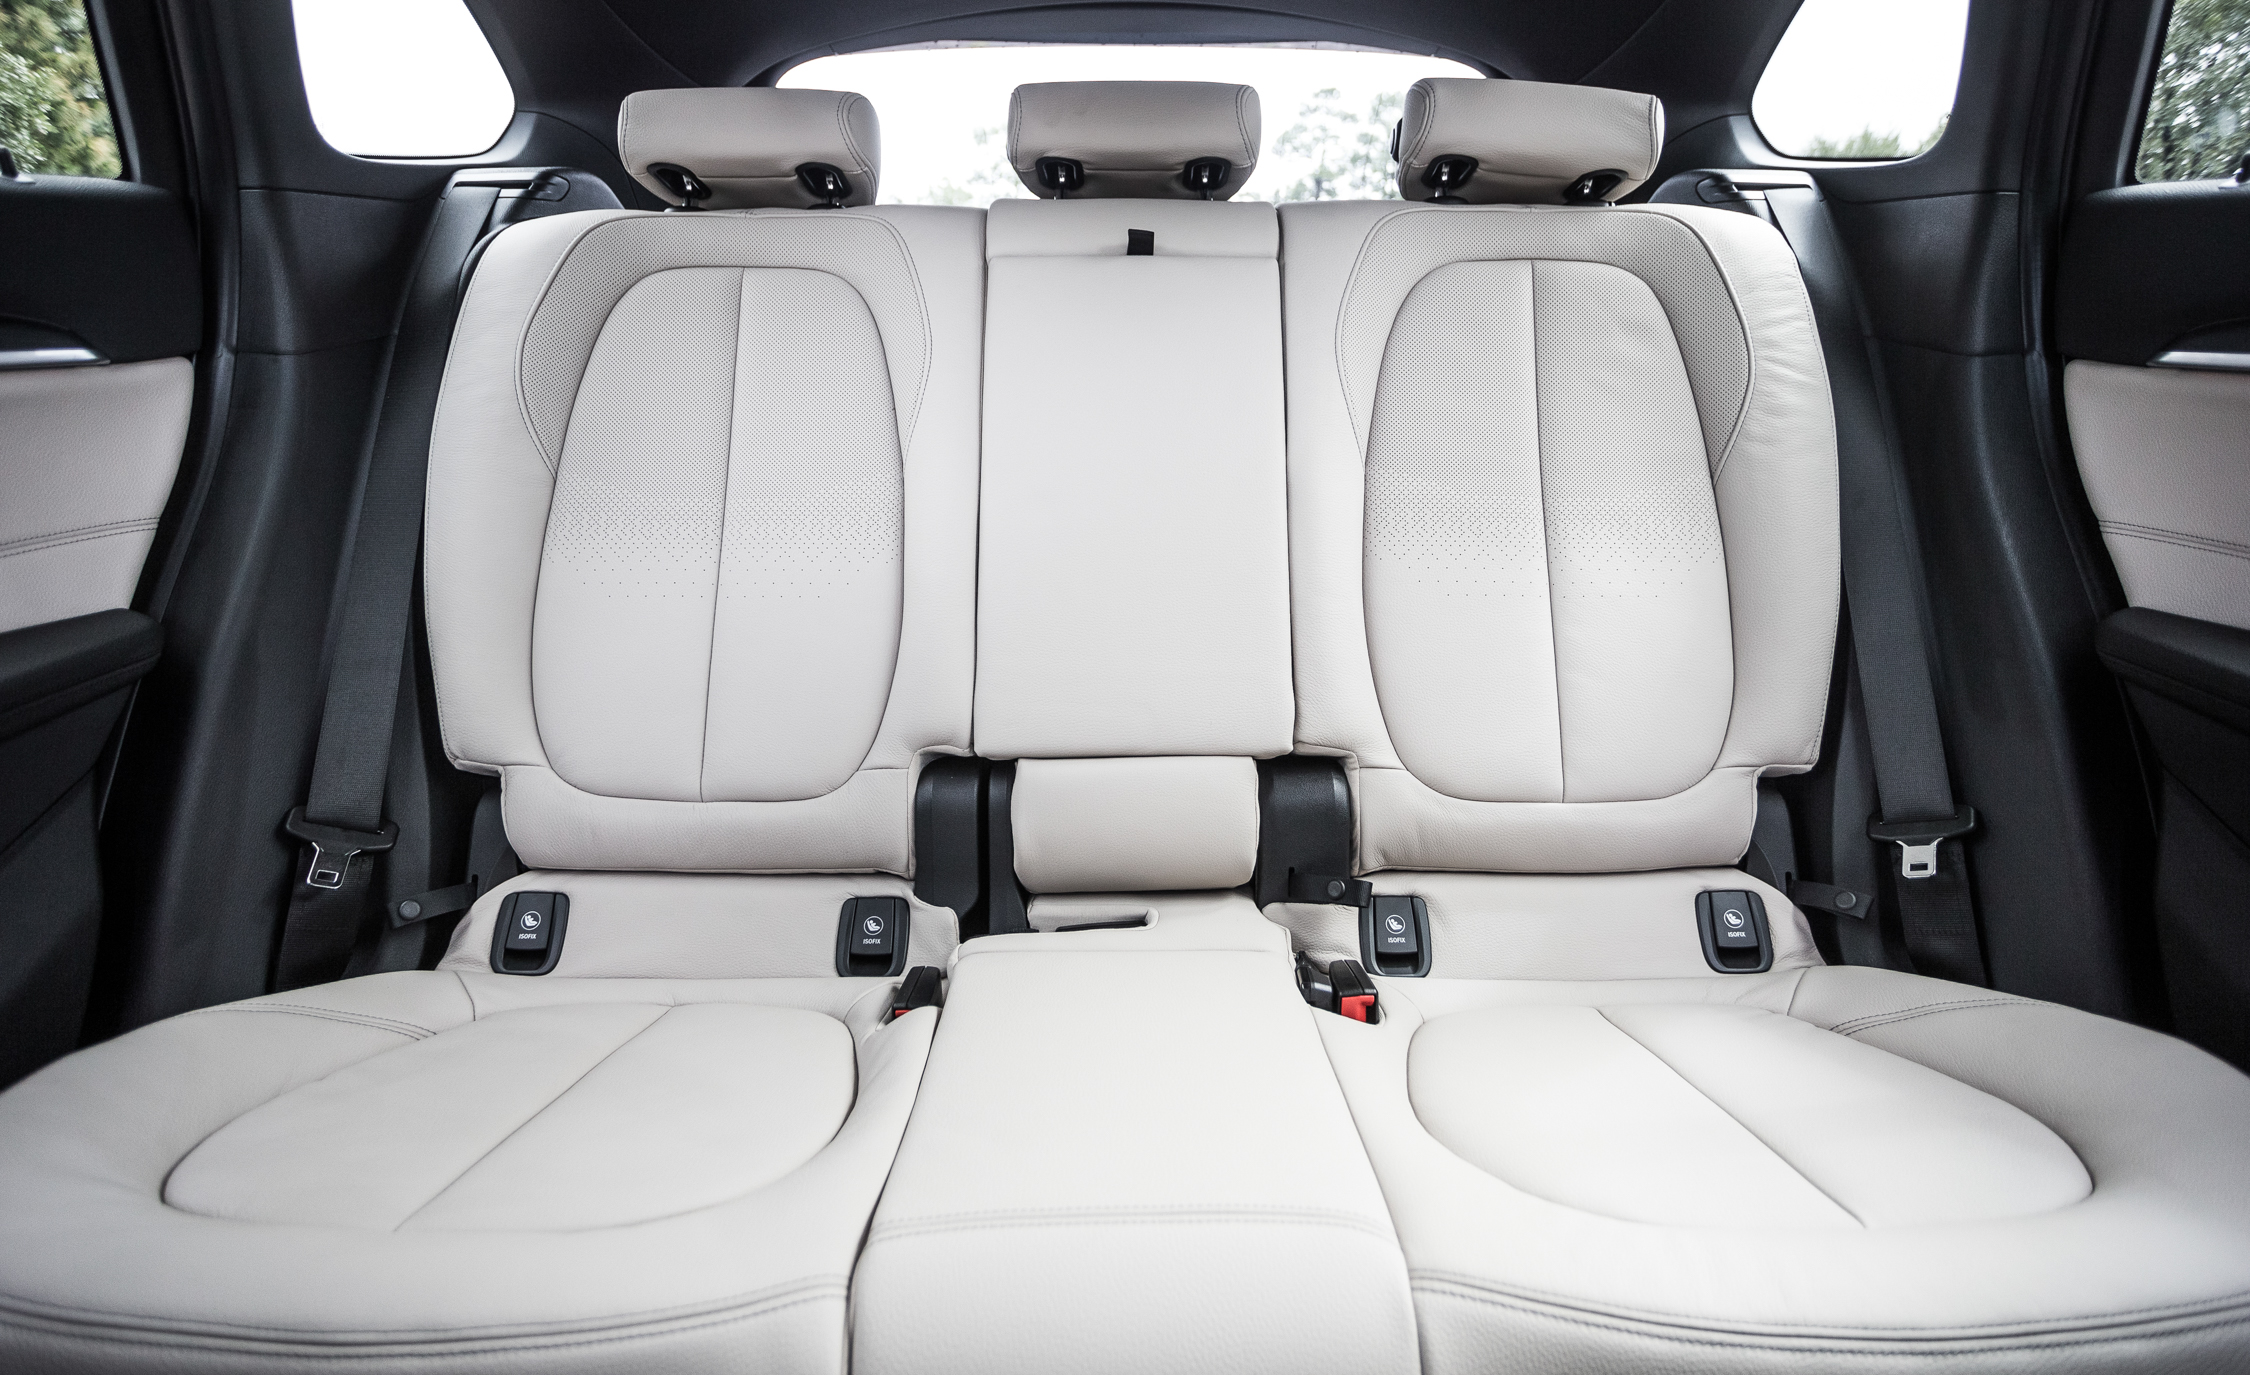 2016 BMW X1 Interior Seats Rear Passengers (Photo 21 of 36)